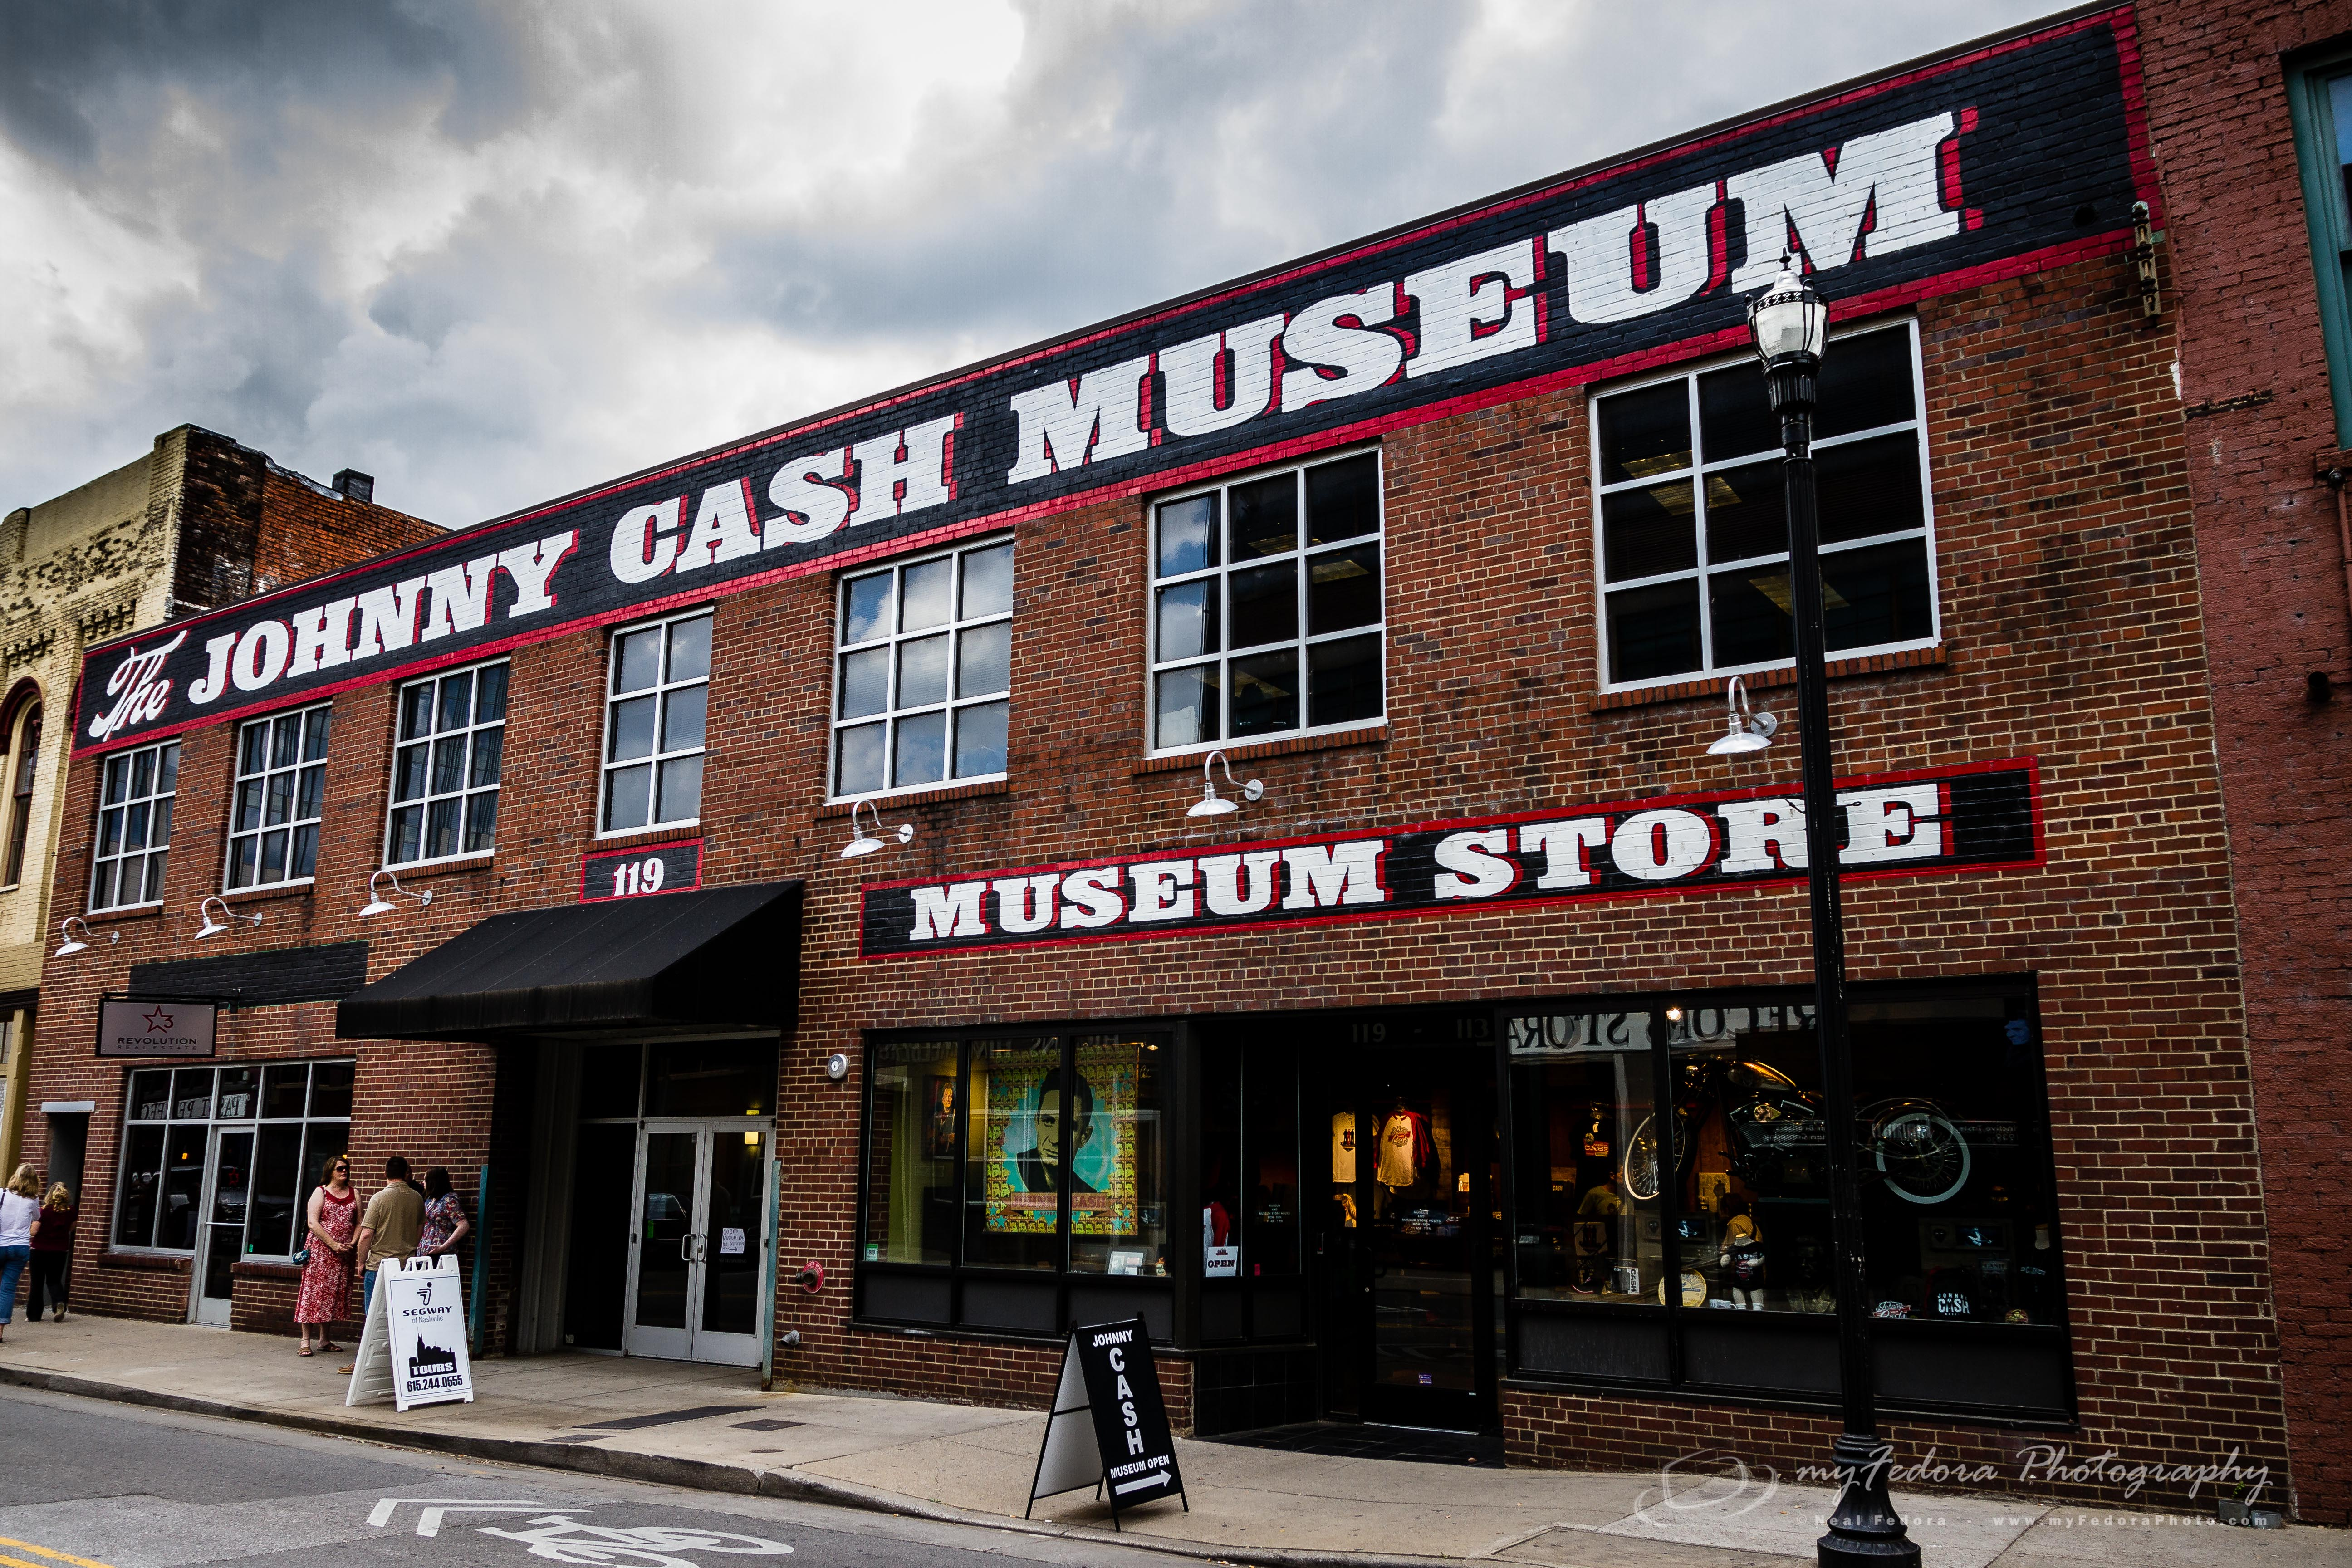 Outside of the Johnny Cash Museum in Nashville, TN